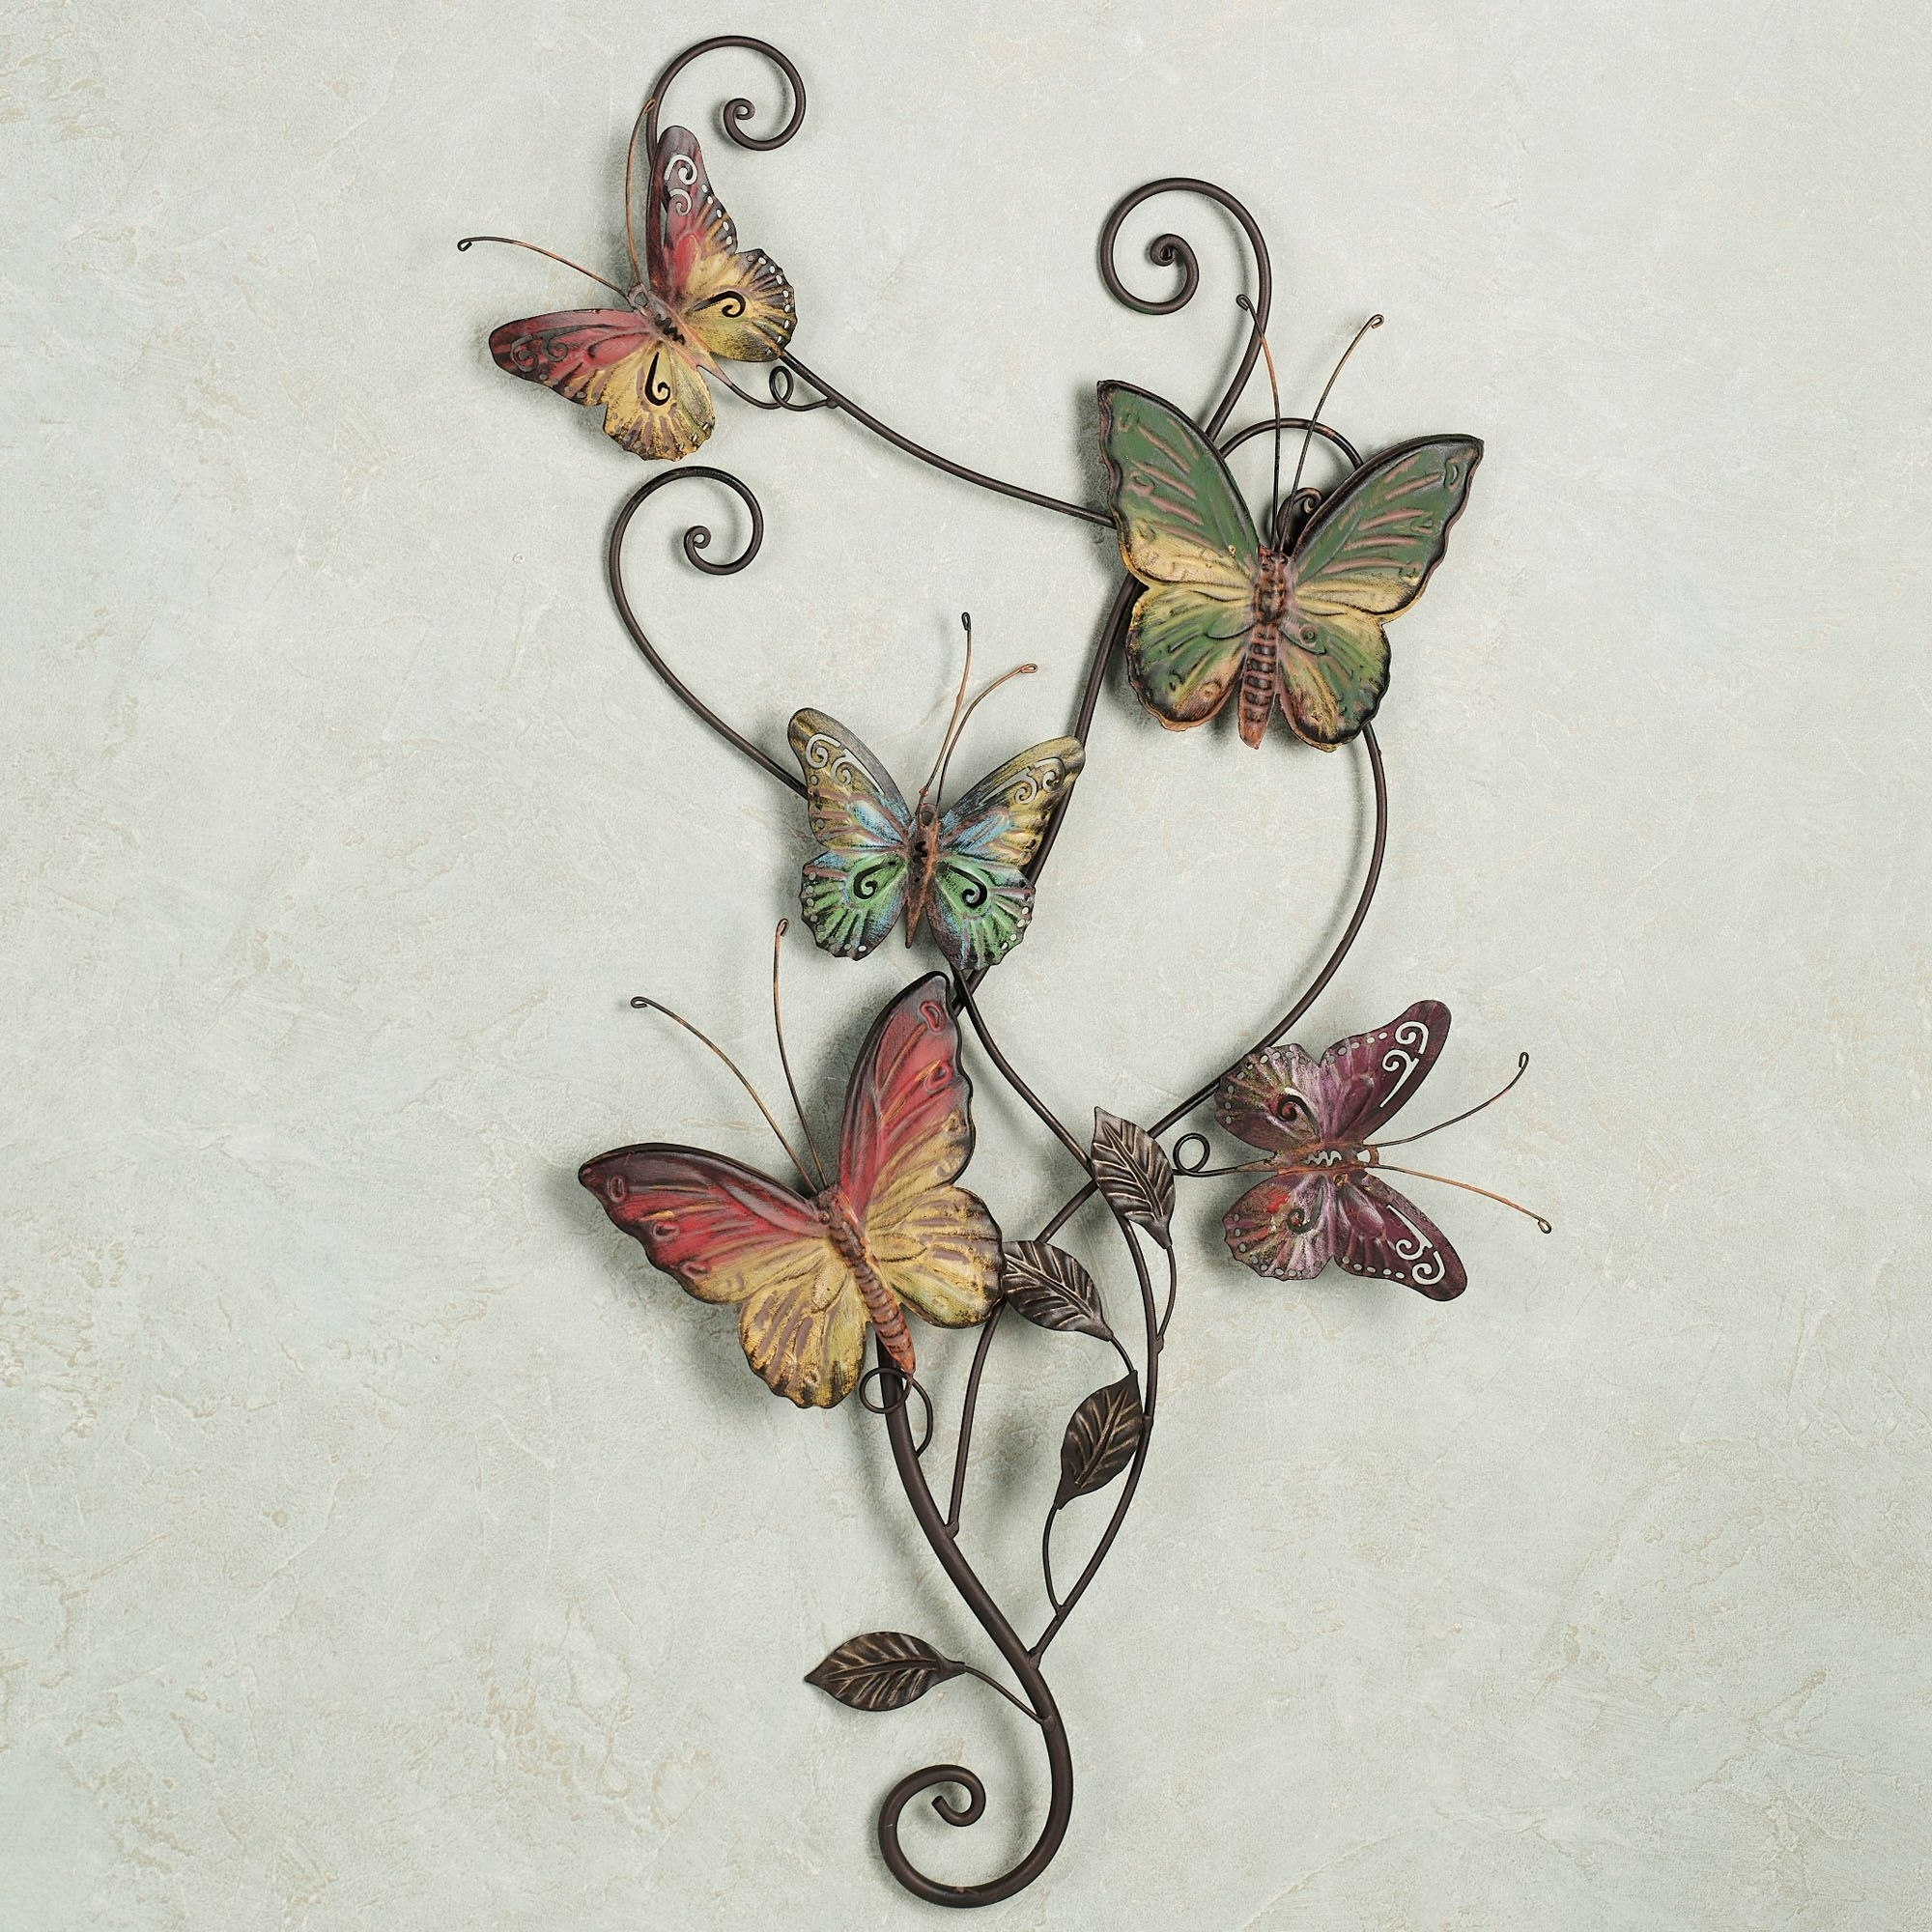 Widely Used White Metal Butterfly Wall Art Intended For White Metal Butterfly Wall Decor • Walls Decor (View 15 of 15)